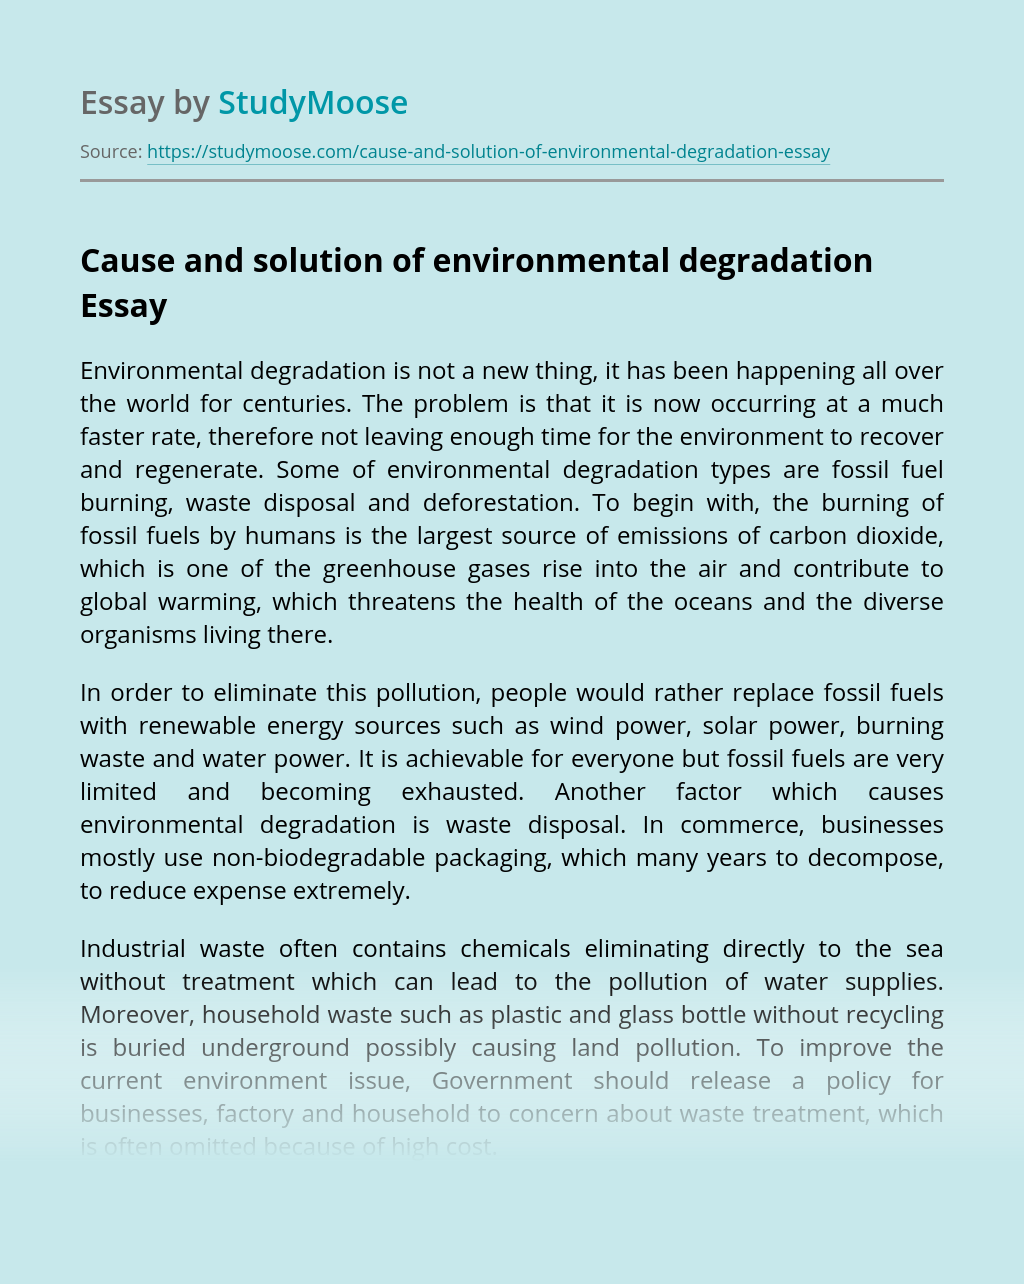 Cause and solution of environmental degradation